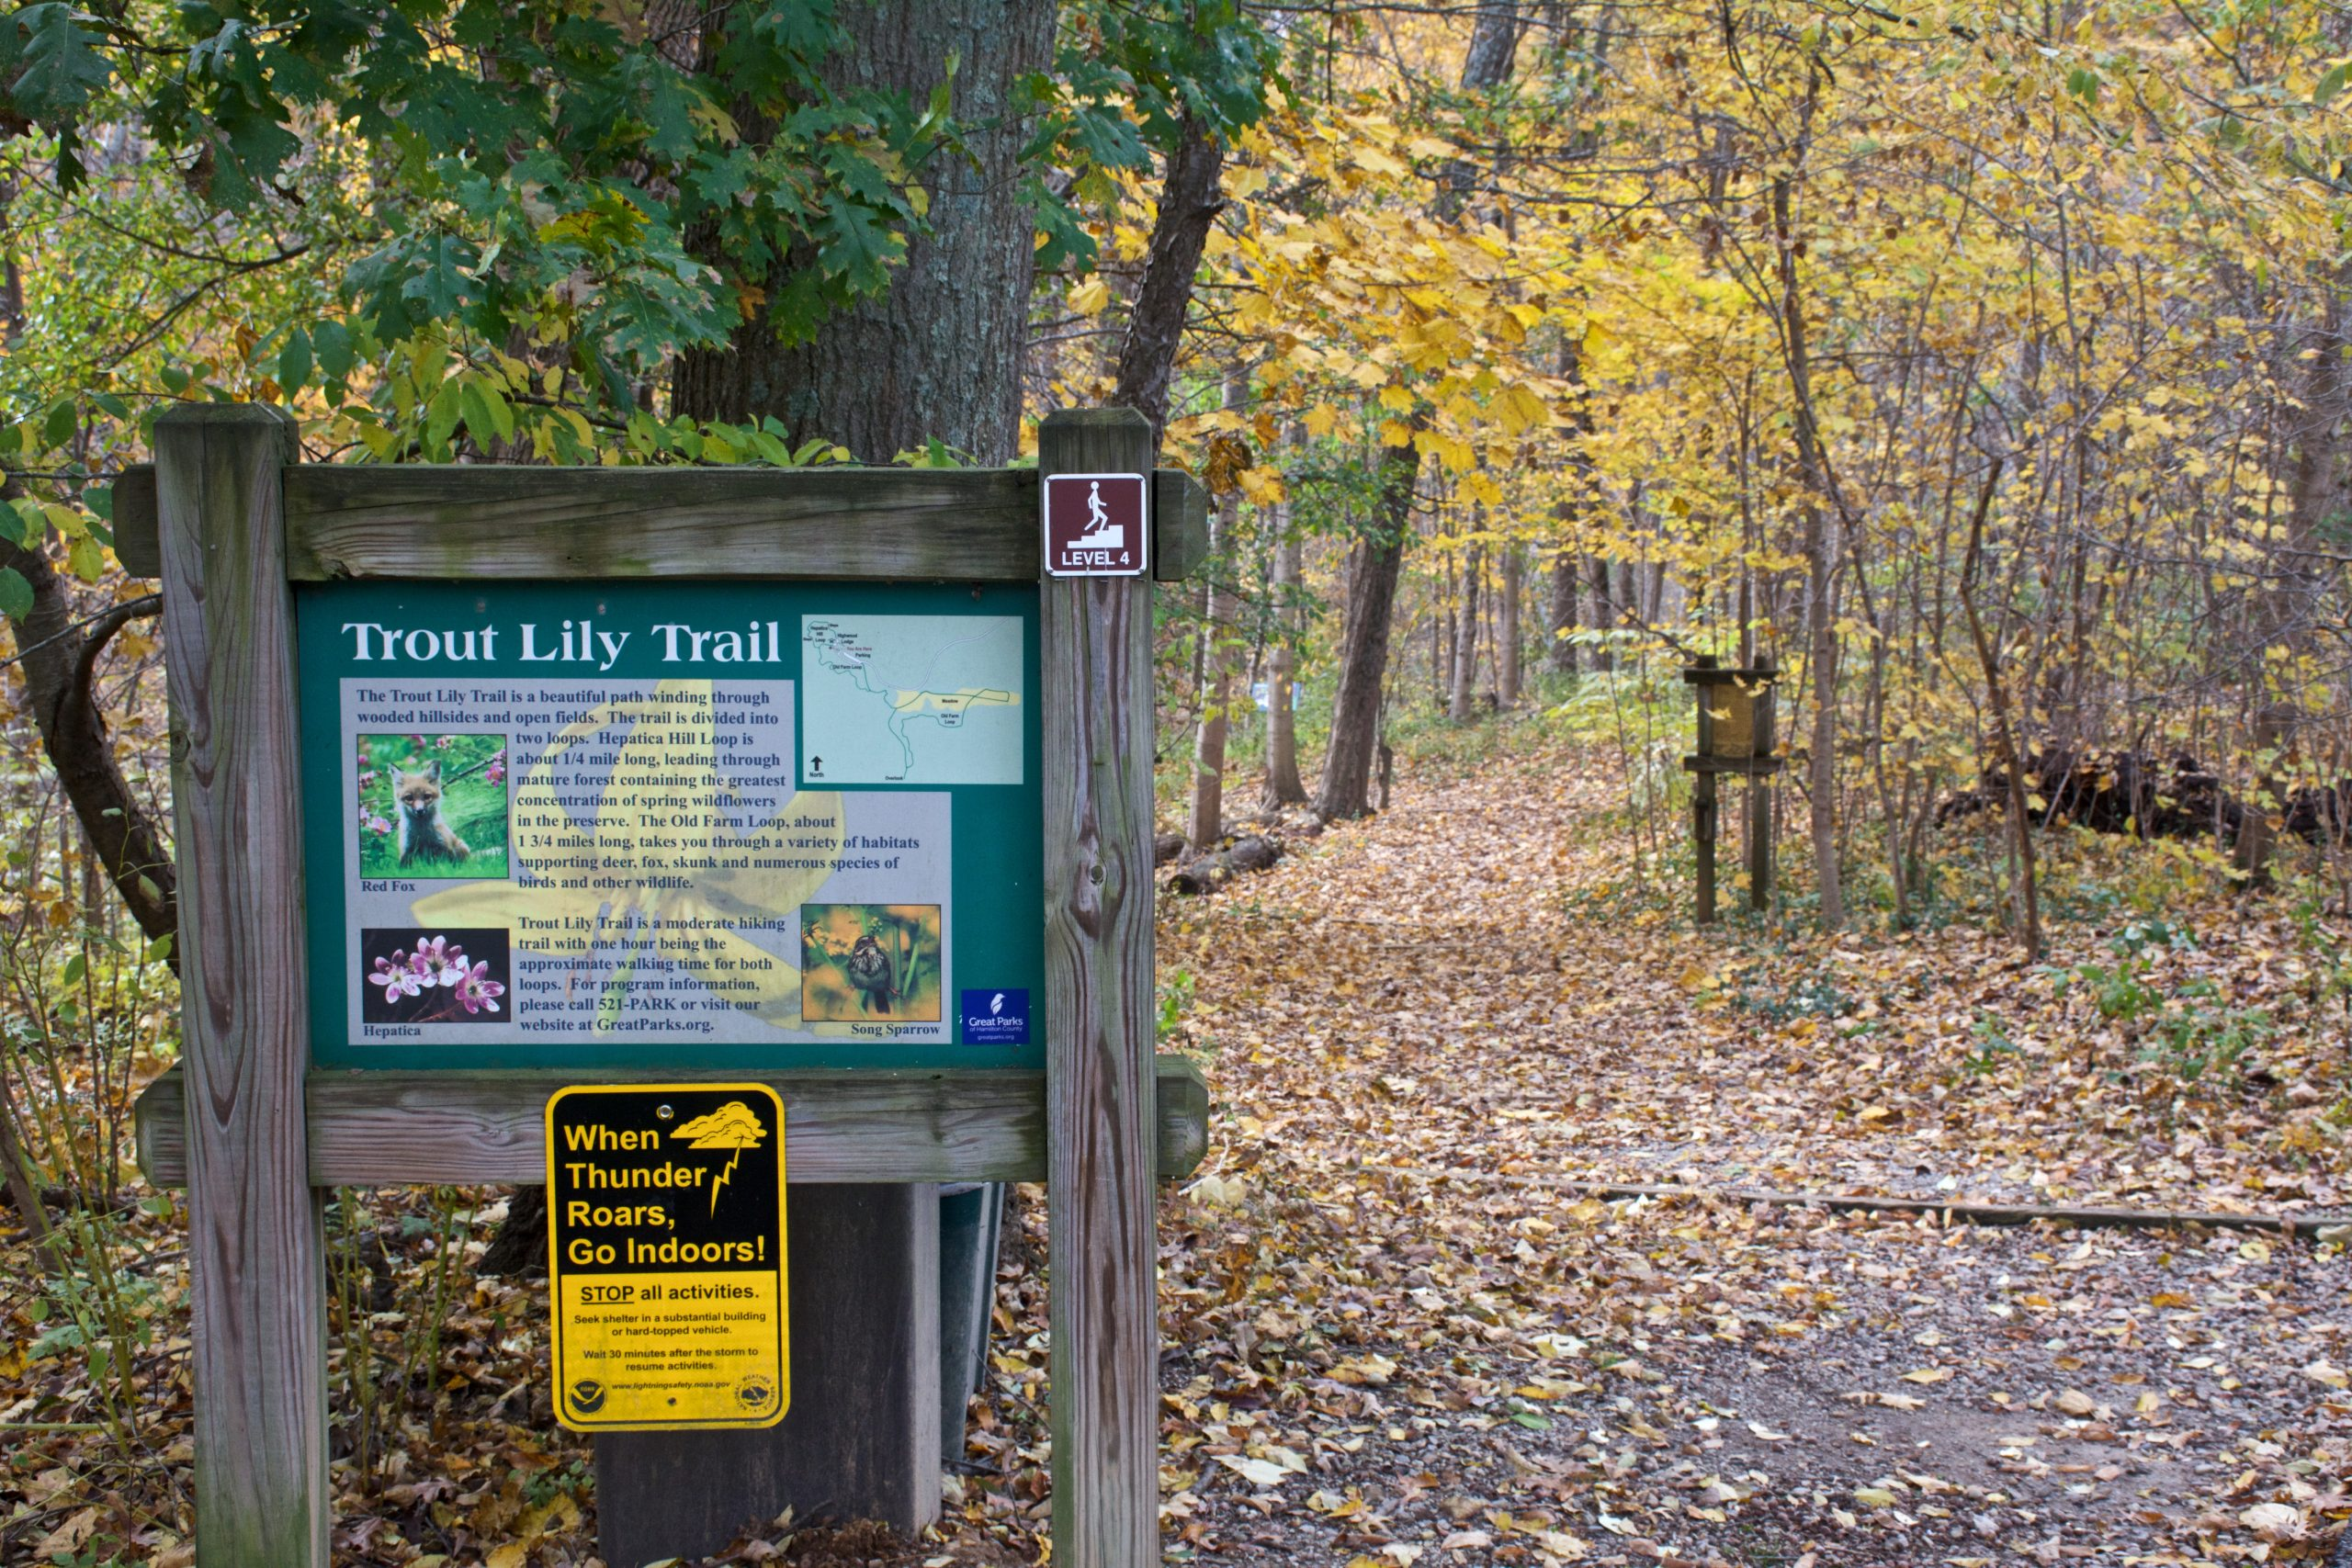 The trailhead to the Trout Lily Trail gives way for a canopy of colorful fall foliage.